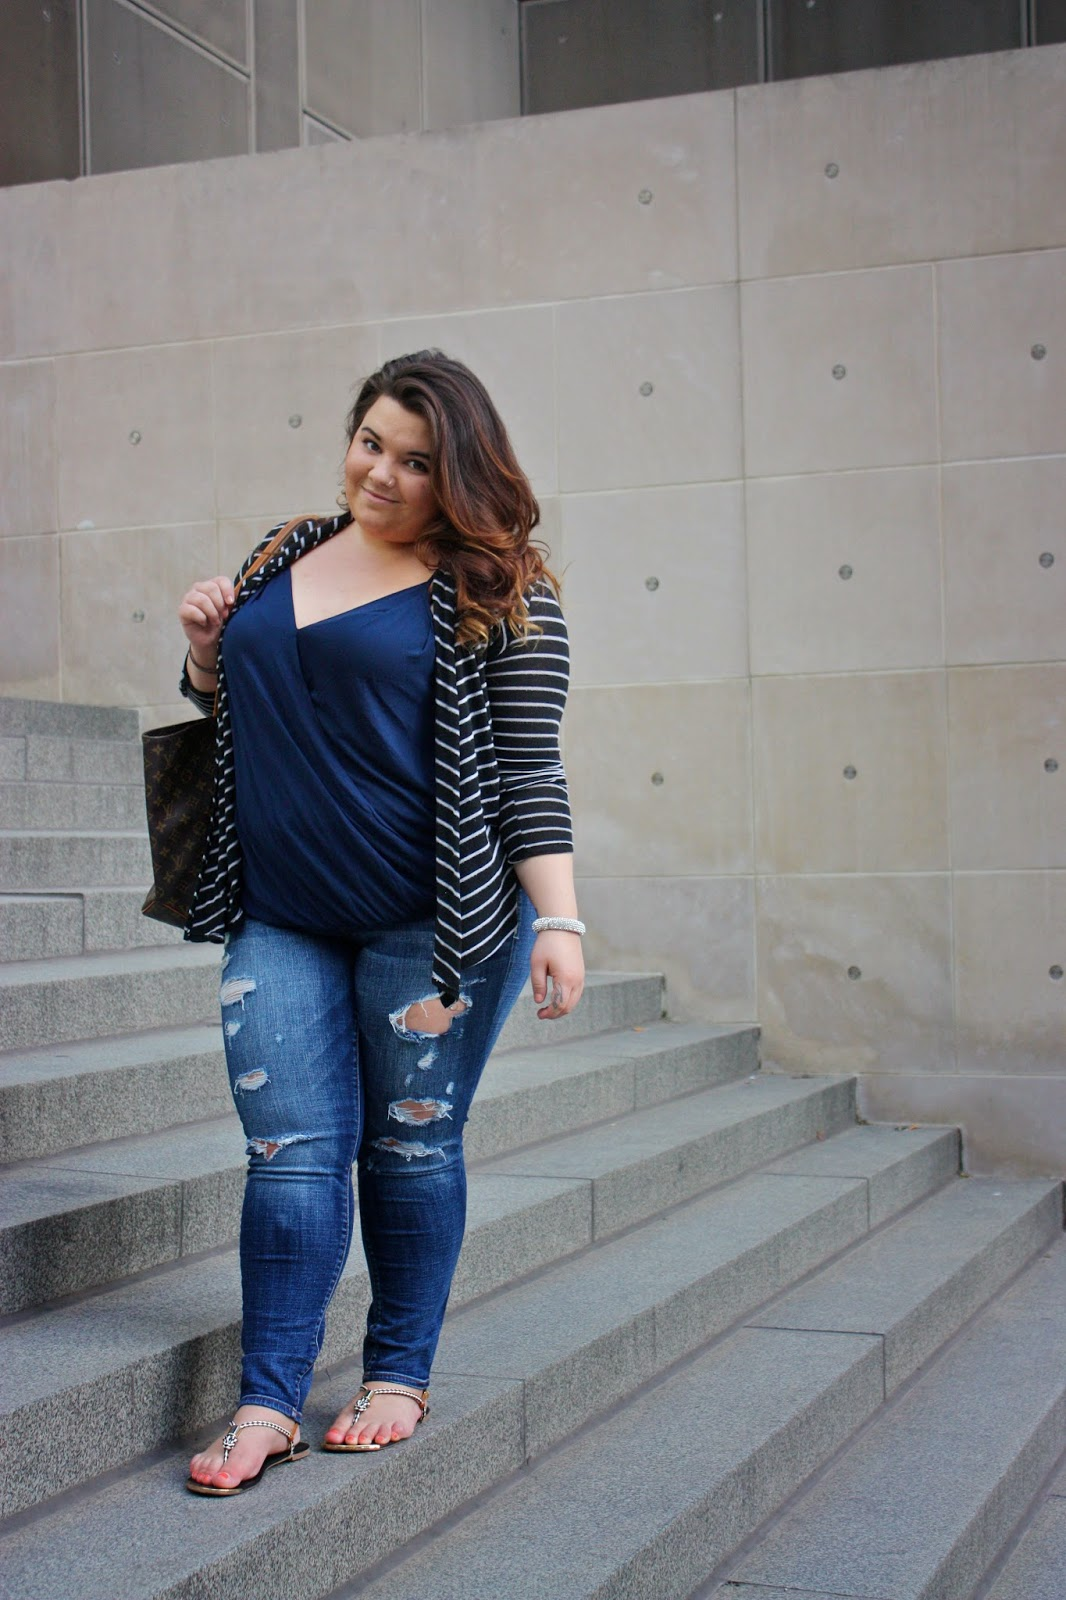 curvy fashionista, Destroyed denim, american eagle jeans, louis vuitton tote, stripes, cardigans, swarovski bangle, missimo sandals, forever 21 plus size, curly hair, ombre, deep neck, plus size fashion blogger, natalie craig, natalie in the city, chicago, spring style 2014, fashion blogger, plus size